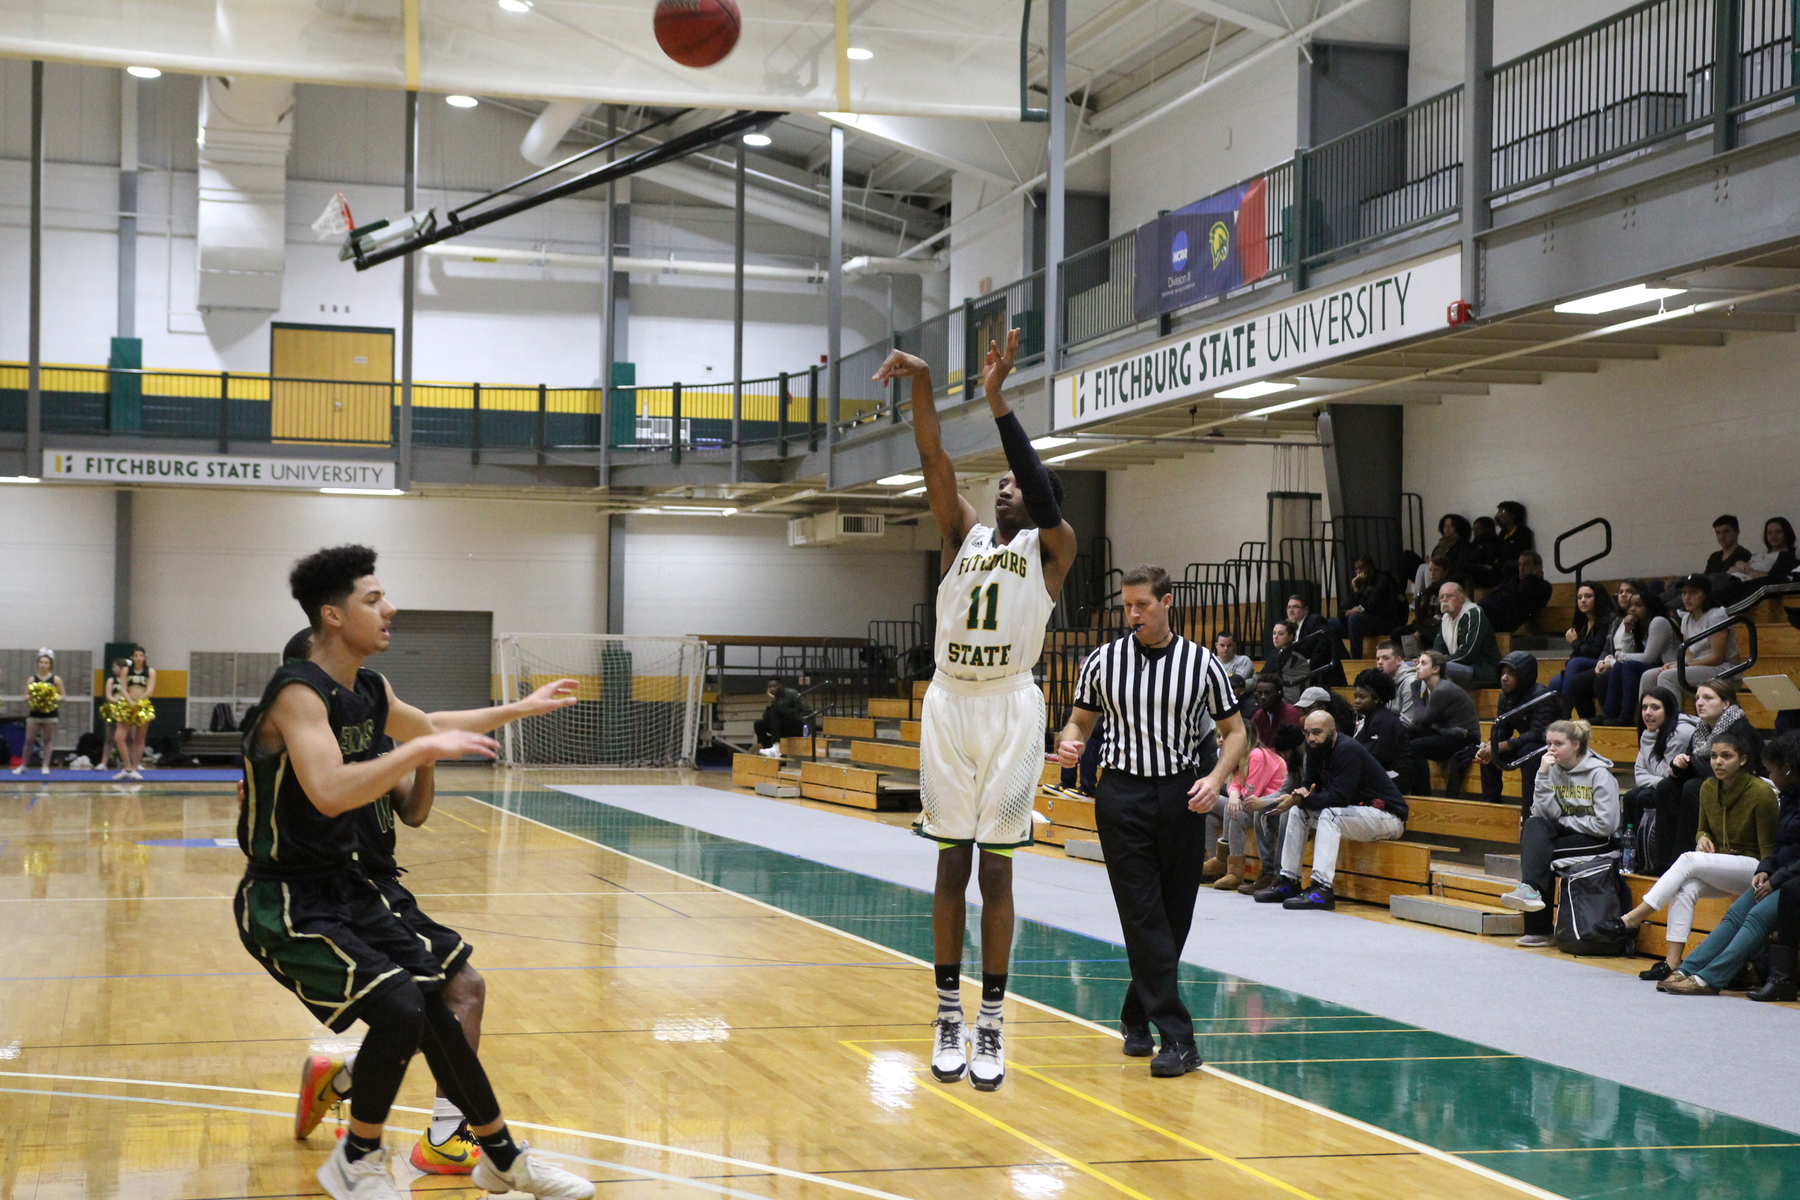 Fitchburg State Nipped By Bridgewater State, 83-77